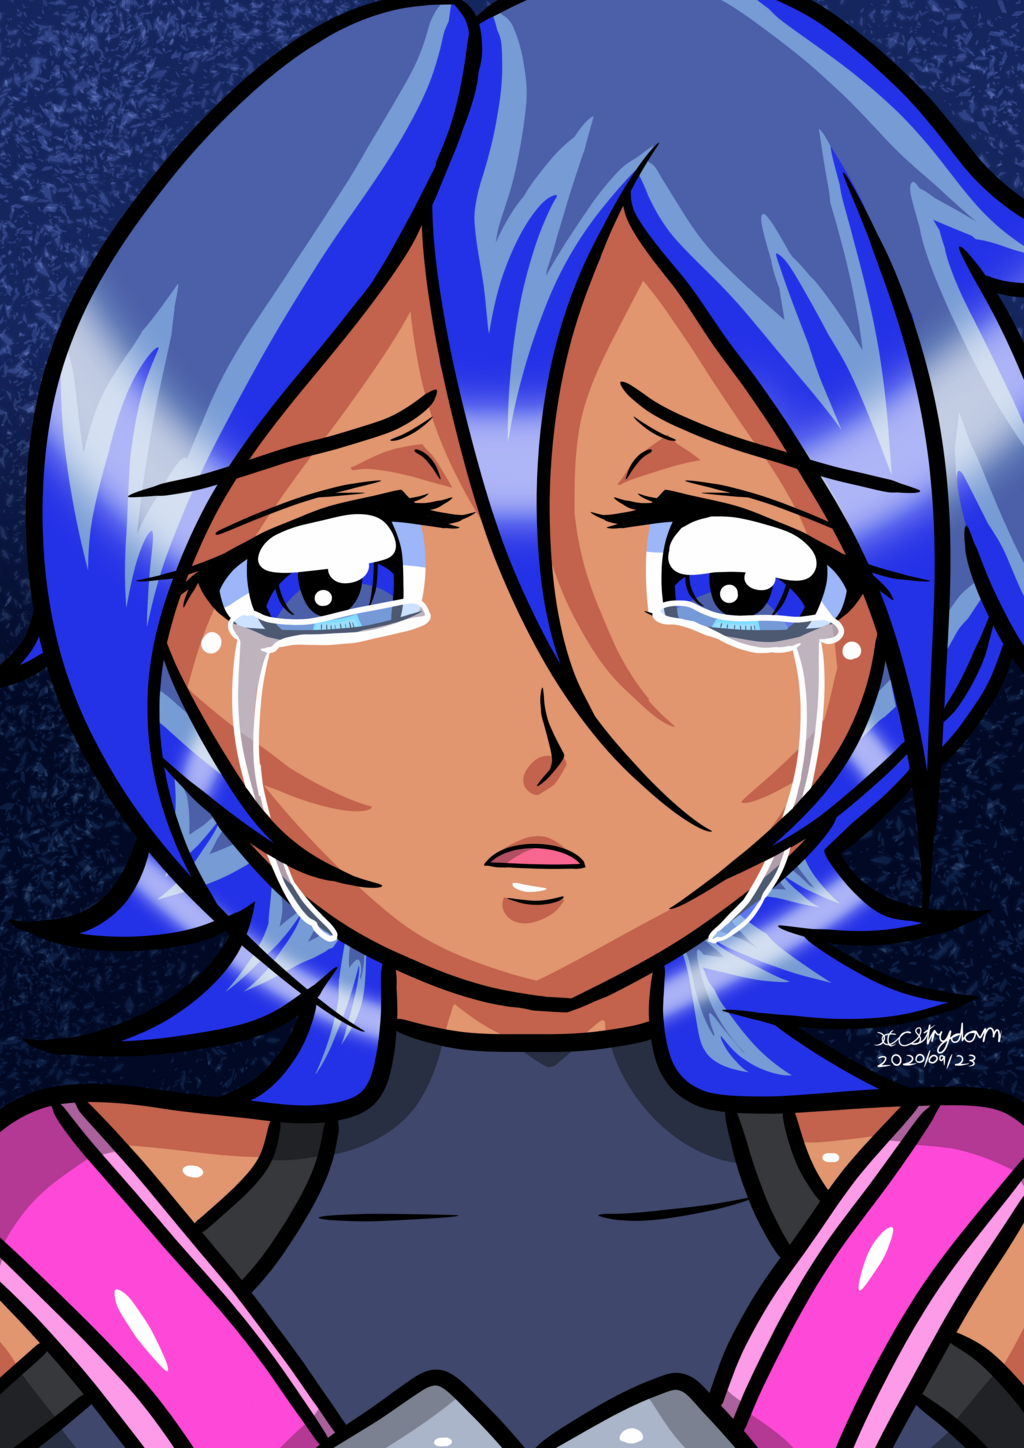 Most recent image: Kingdom Hearts - Aqua woke up after nightmare.